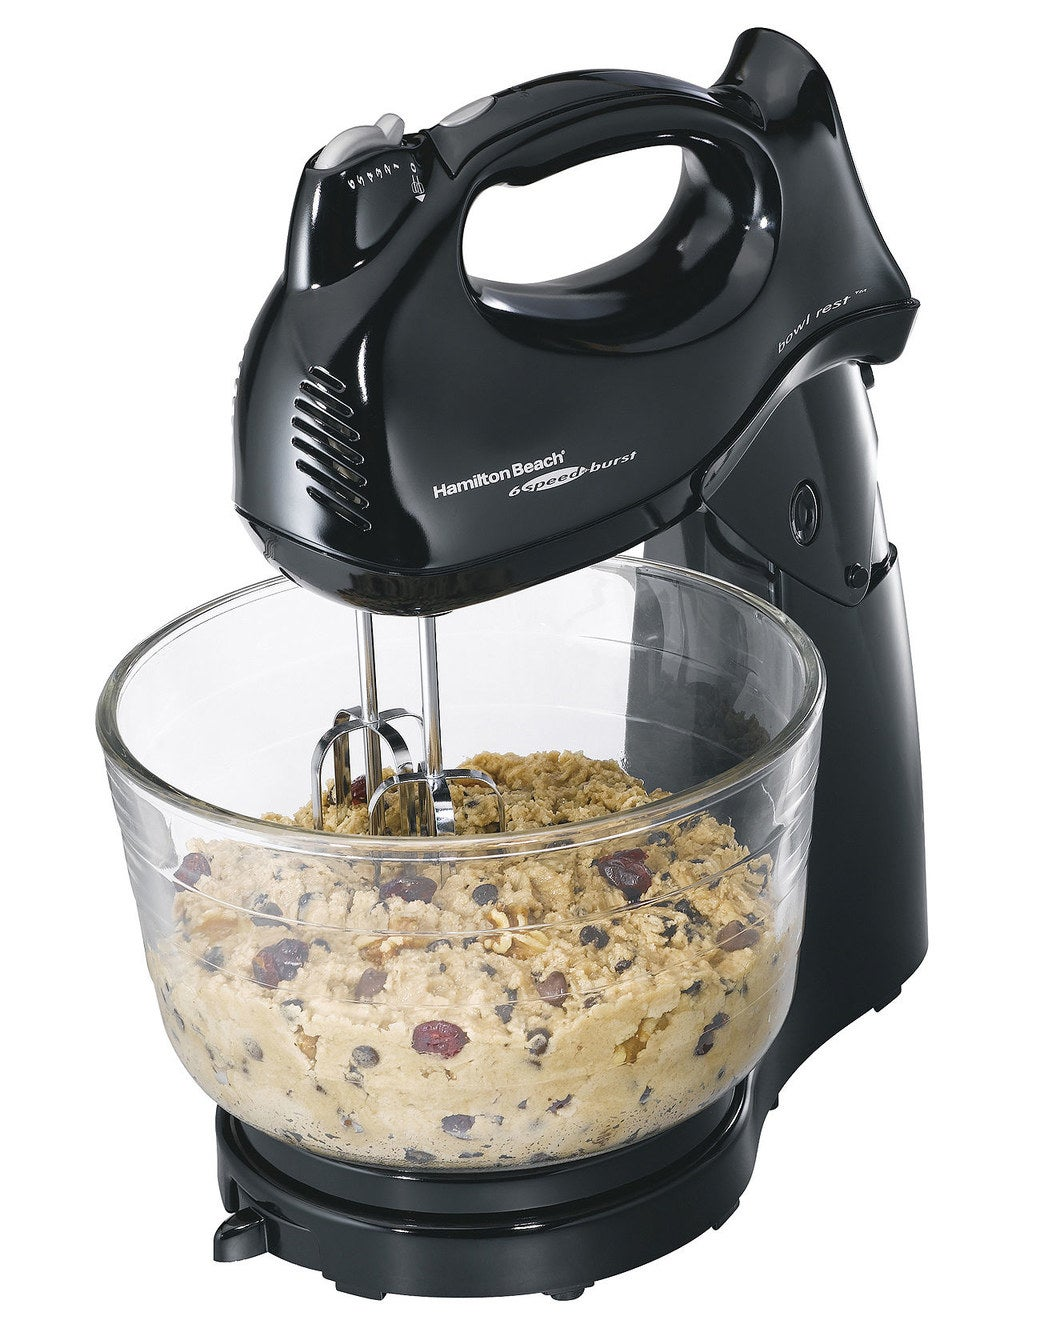 A four-quart stand mixer that transforms into a six-speed hand mixer with beaters, dough hooks, and a whisk attachment.